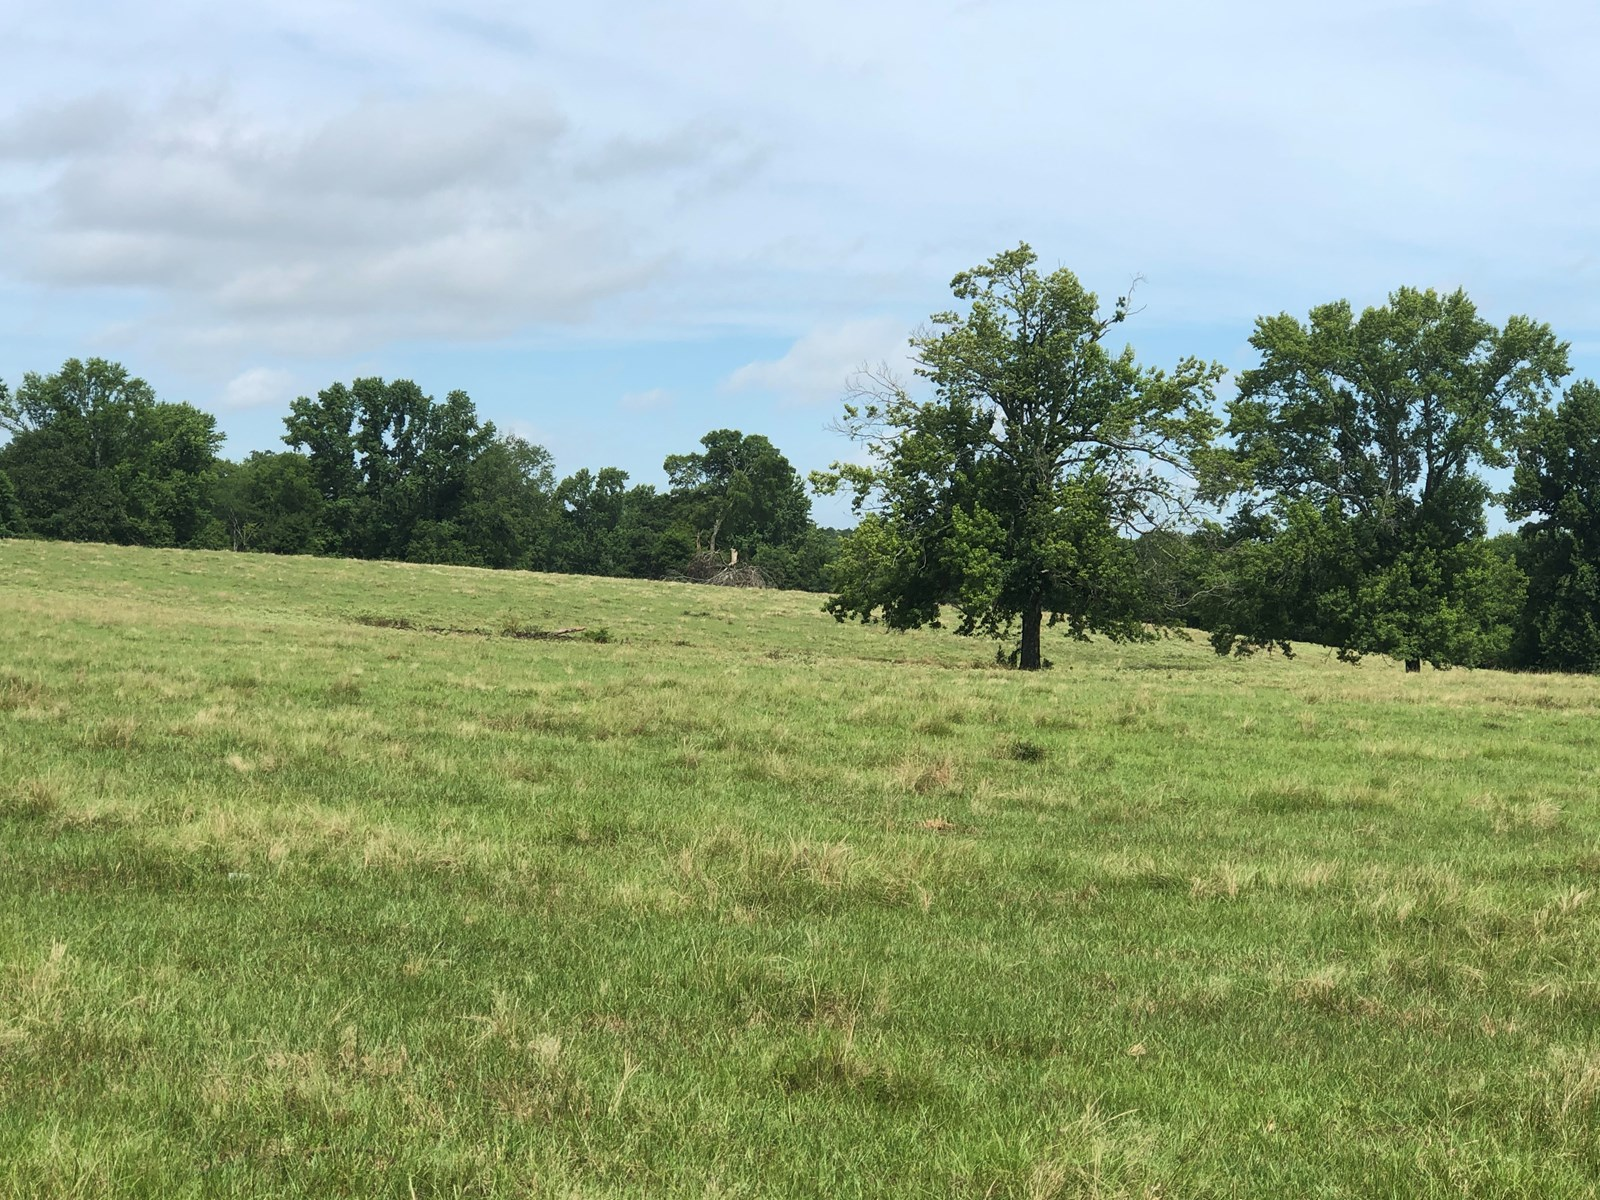 East Tx Ranch Land For Sale 45.3± acre Cattle Land in Texas